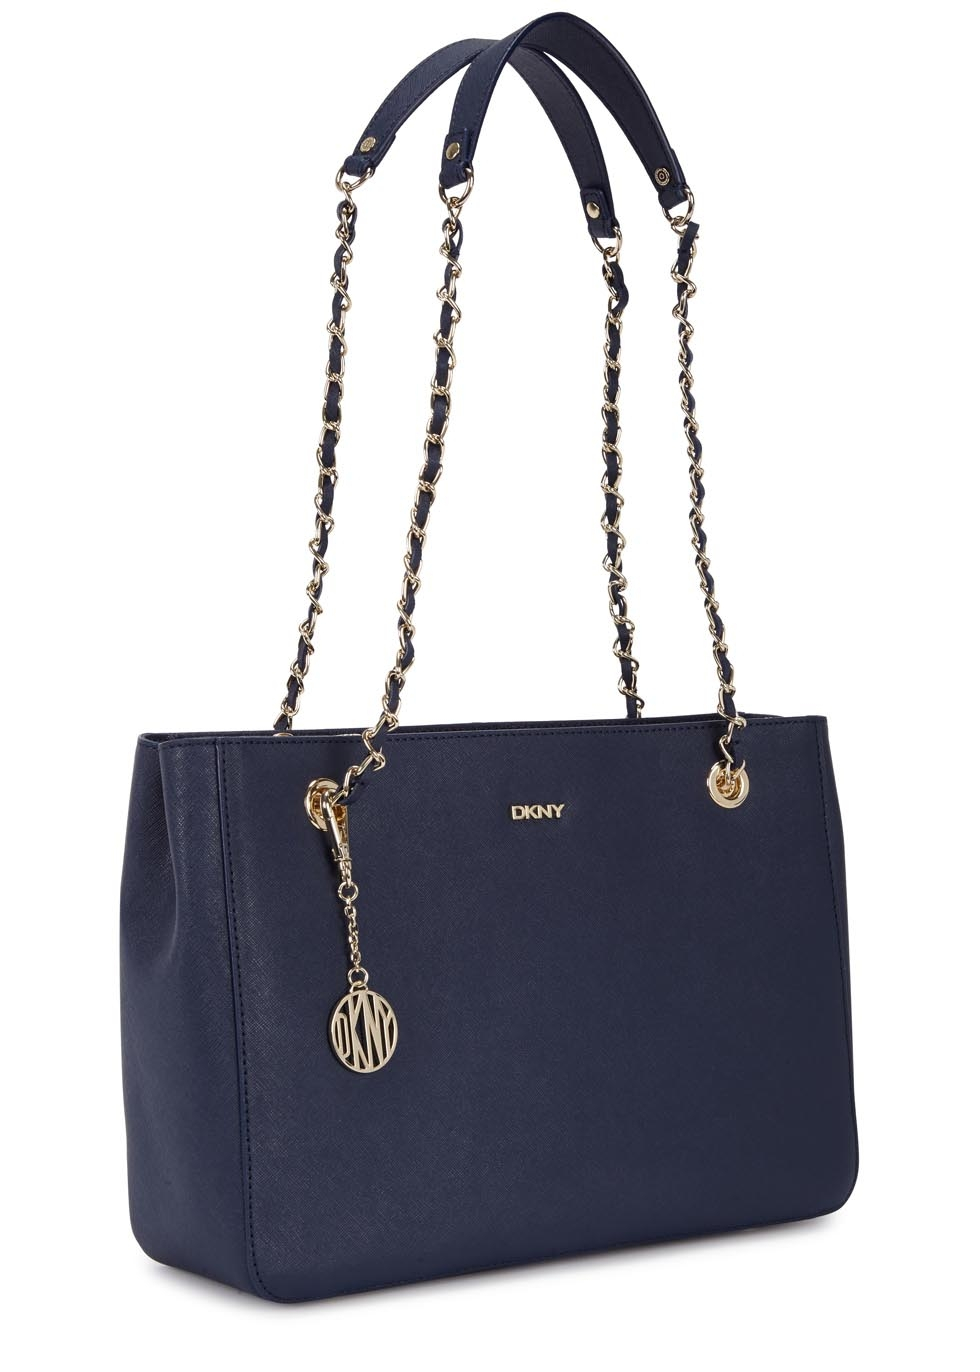 dkny bryant park navy leather tote in black navy lyst. Black Bedroom Furniture Sets. Home Design Ideas